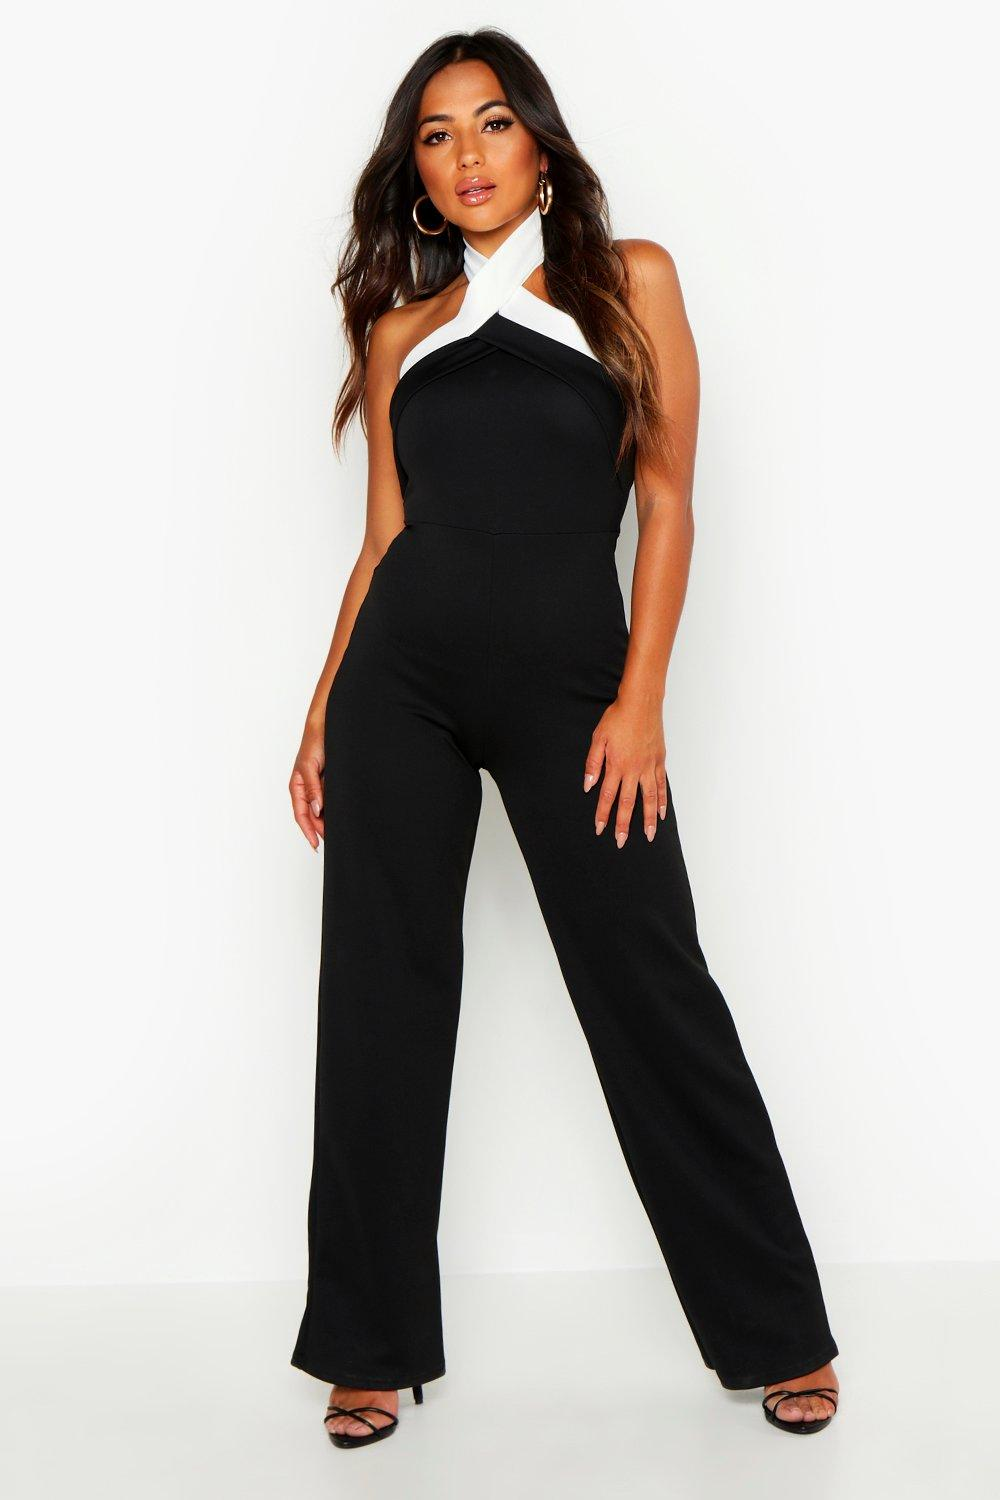 New Jumpsuit For Petite Women